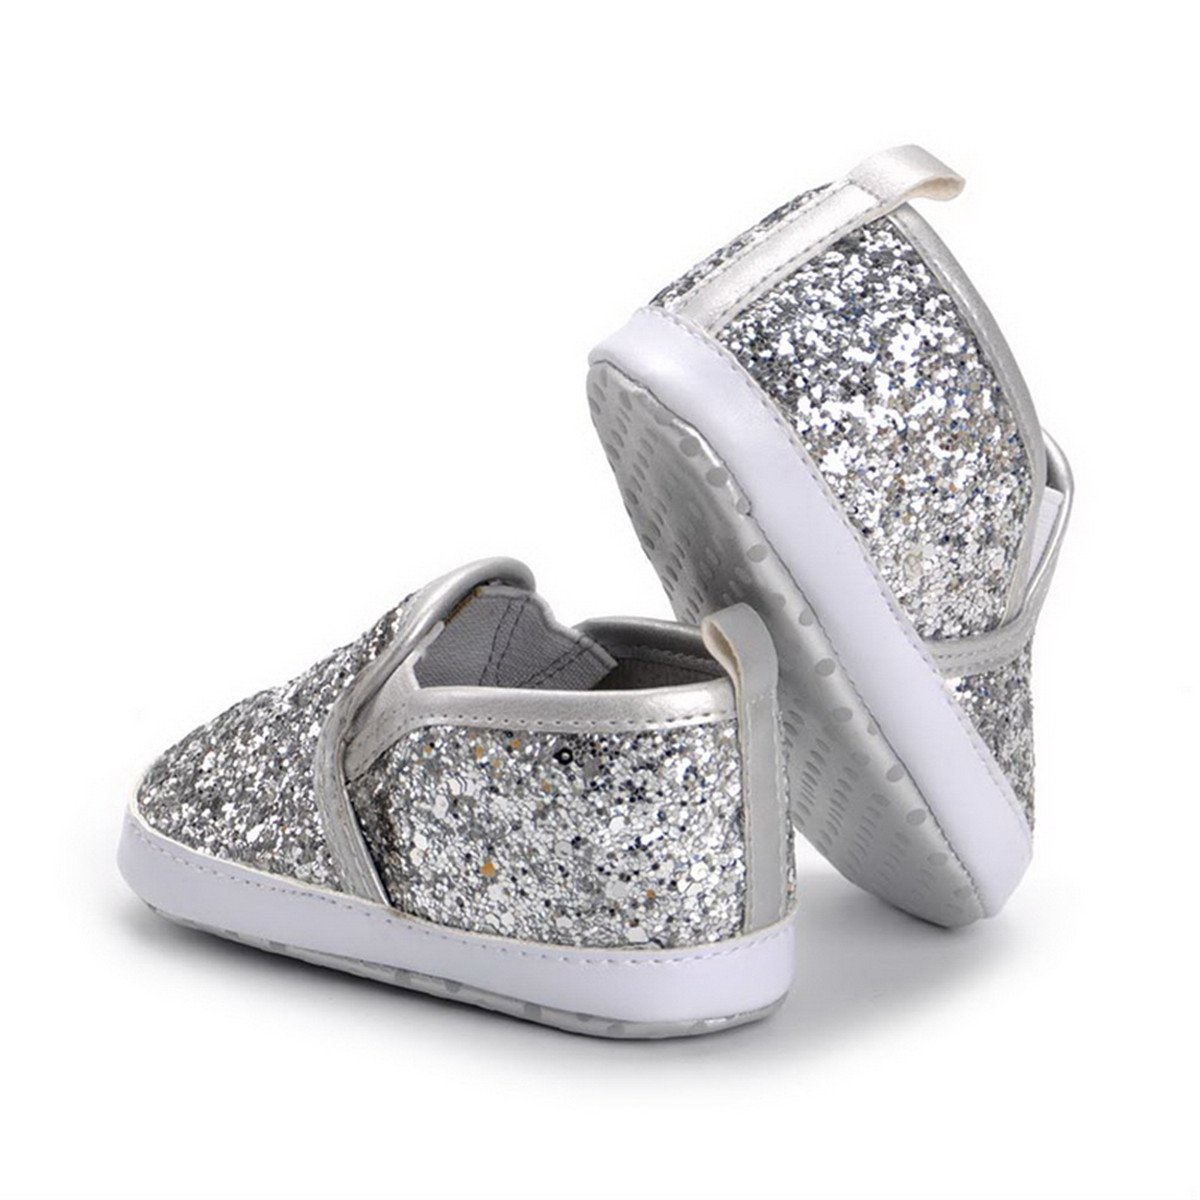 HONGTEYA Baby Boy Girls Sequin Crib Shoes Toddler Casual Glitter Moccasins Shoes Kids Sneakers